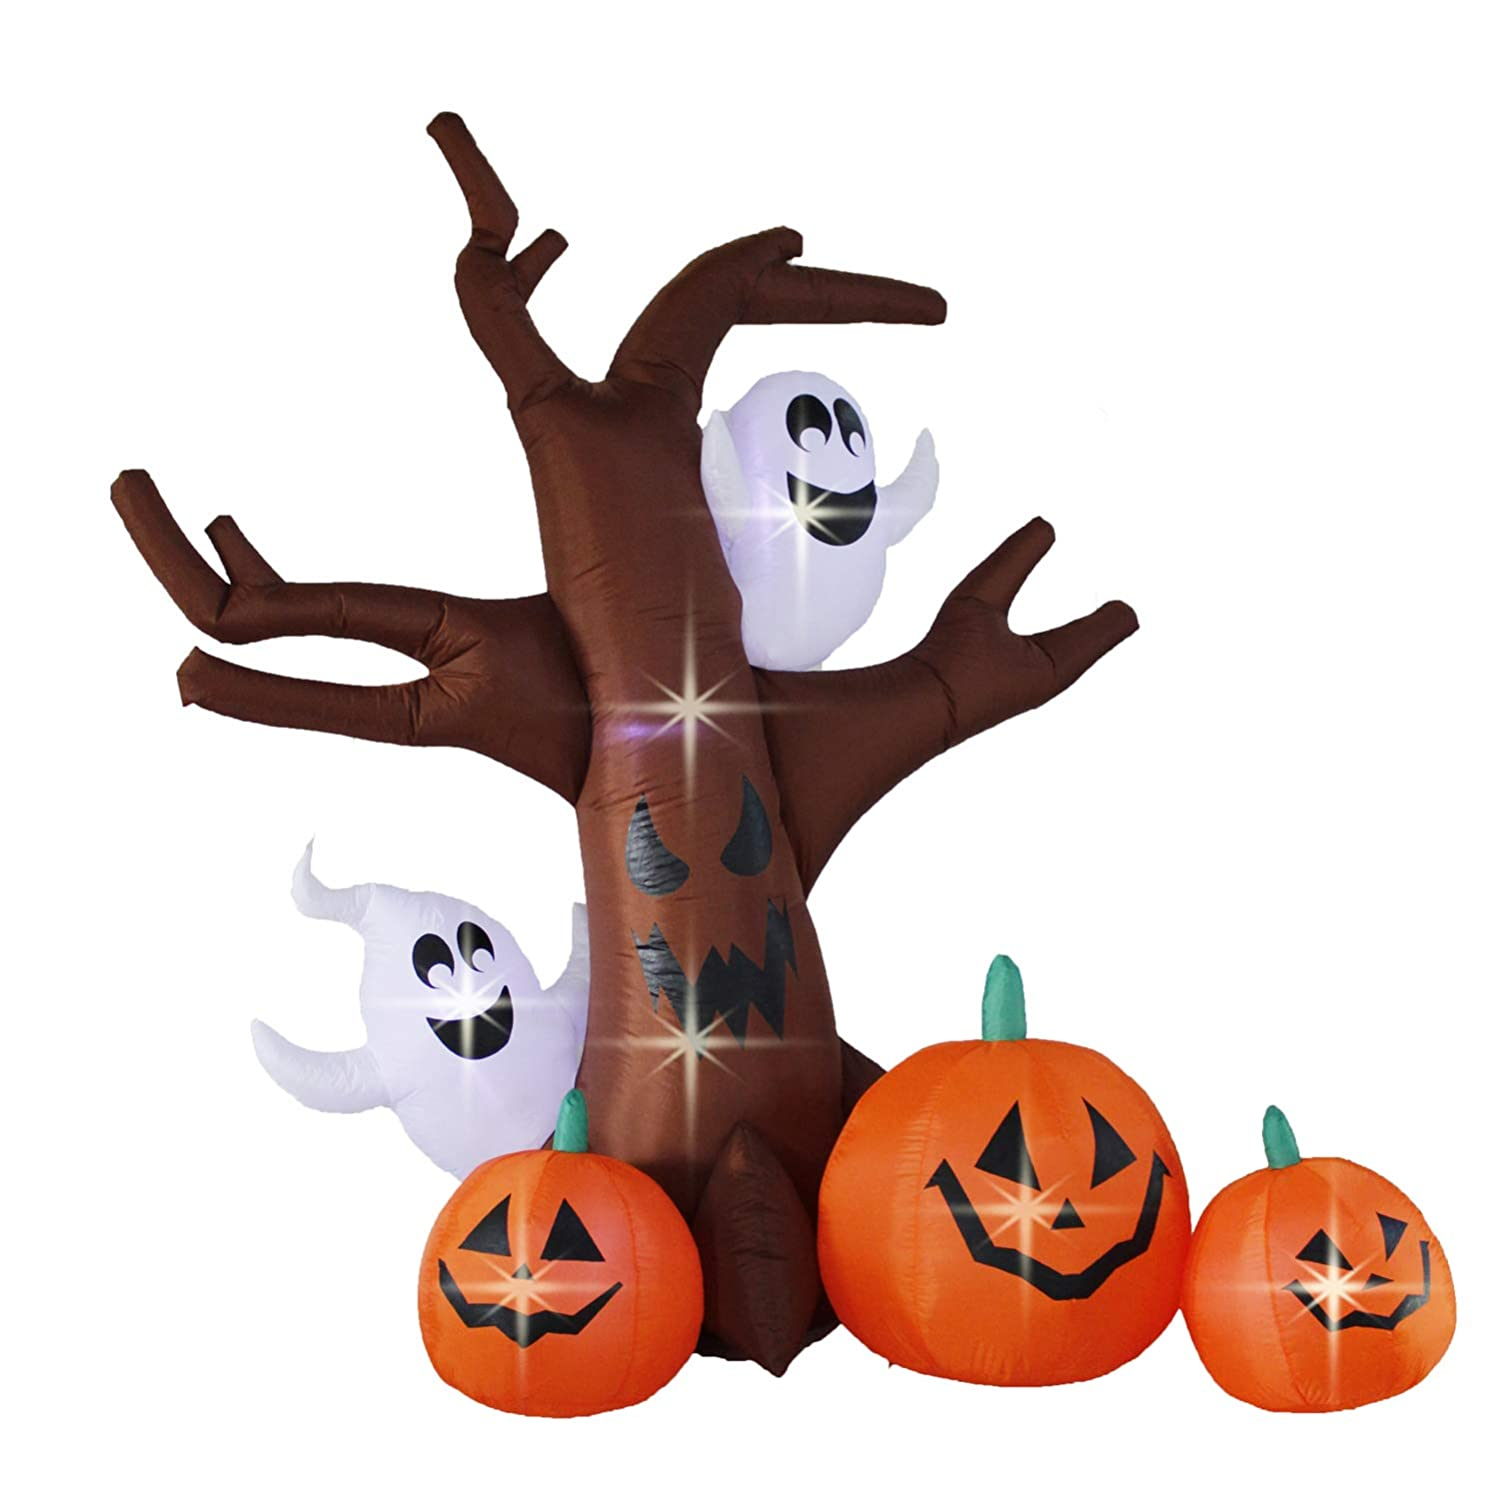 Bigjoys 8 Ft Halloween Inflatable Tree with Ghost Pumpkin Decoration for Indoor Outdoor Home Yard Party CHH1704-240